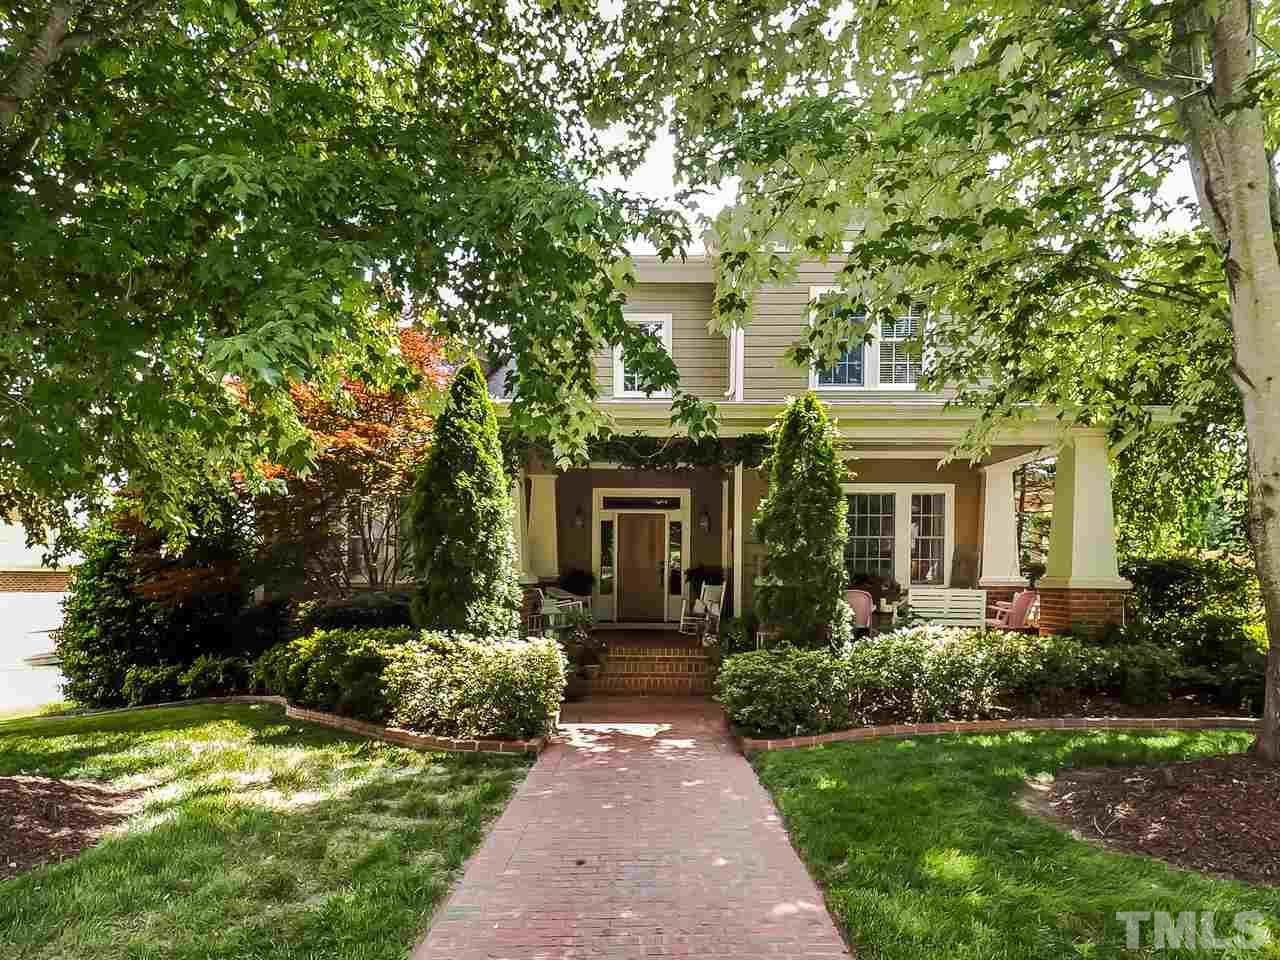 Gorgeous Craftsman Inspired Estate Finished in the Richest Details.Wrap around brick porch.2 sty entry.12 ft ceilings on 1st flr.HDWD thru out! No detail was spared! Gas logs in FR w/custom built ins.KIT w/miles of granite, gorgeous cabs.BFT nook w/pvt porch.3 seasons rm w/FP.1st flr MSTR boasts picture frame molding,spa bath&over sized custom walk in. Pvt stairs lead to en suite perfect for multi-gen living or 2nd BONUS.Amazing patio&hardscaping.New roof, ext&int paint. Close to RTP,540,55.Top Schools!